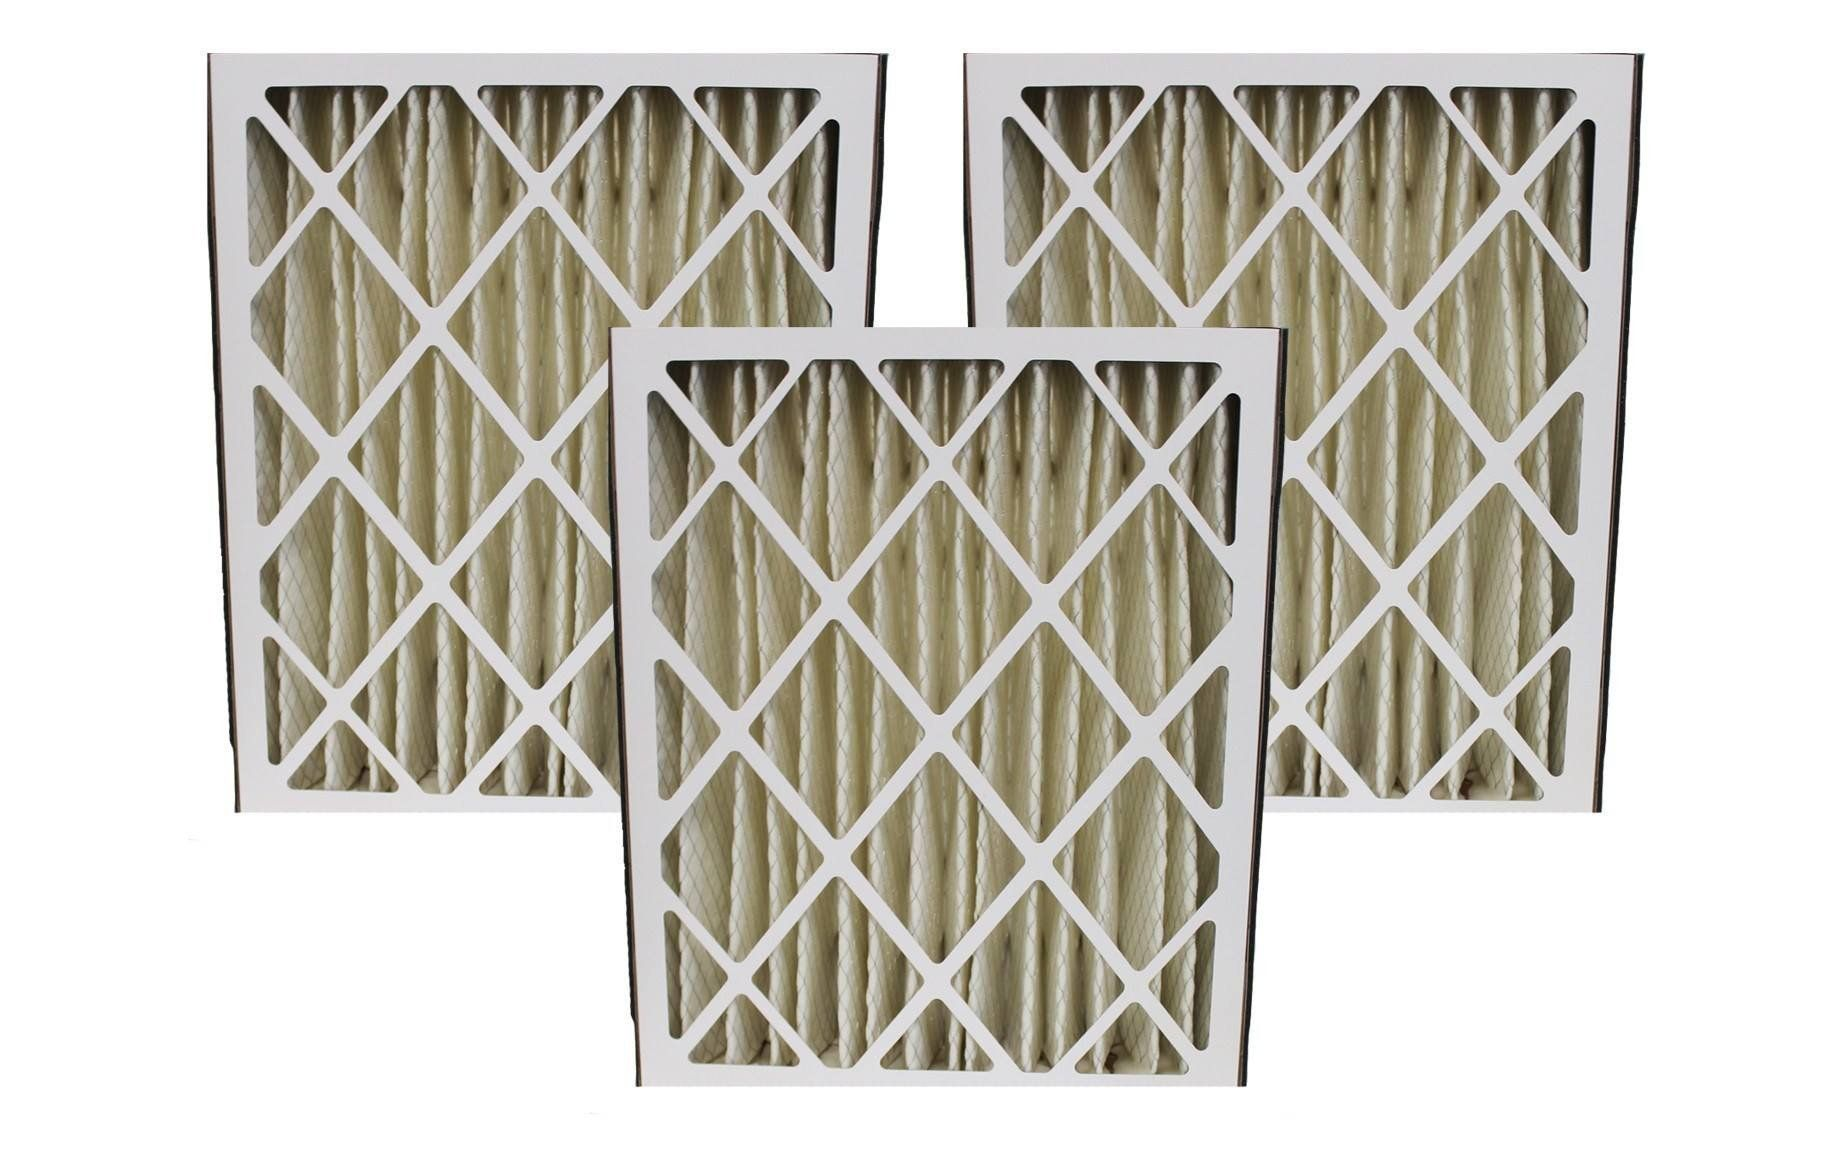 Replacement 20x25x5 MERV8 HVAC Furnace Filter, Fits